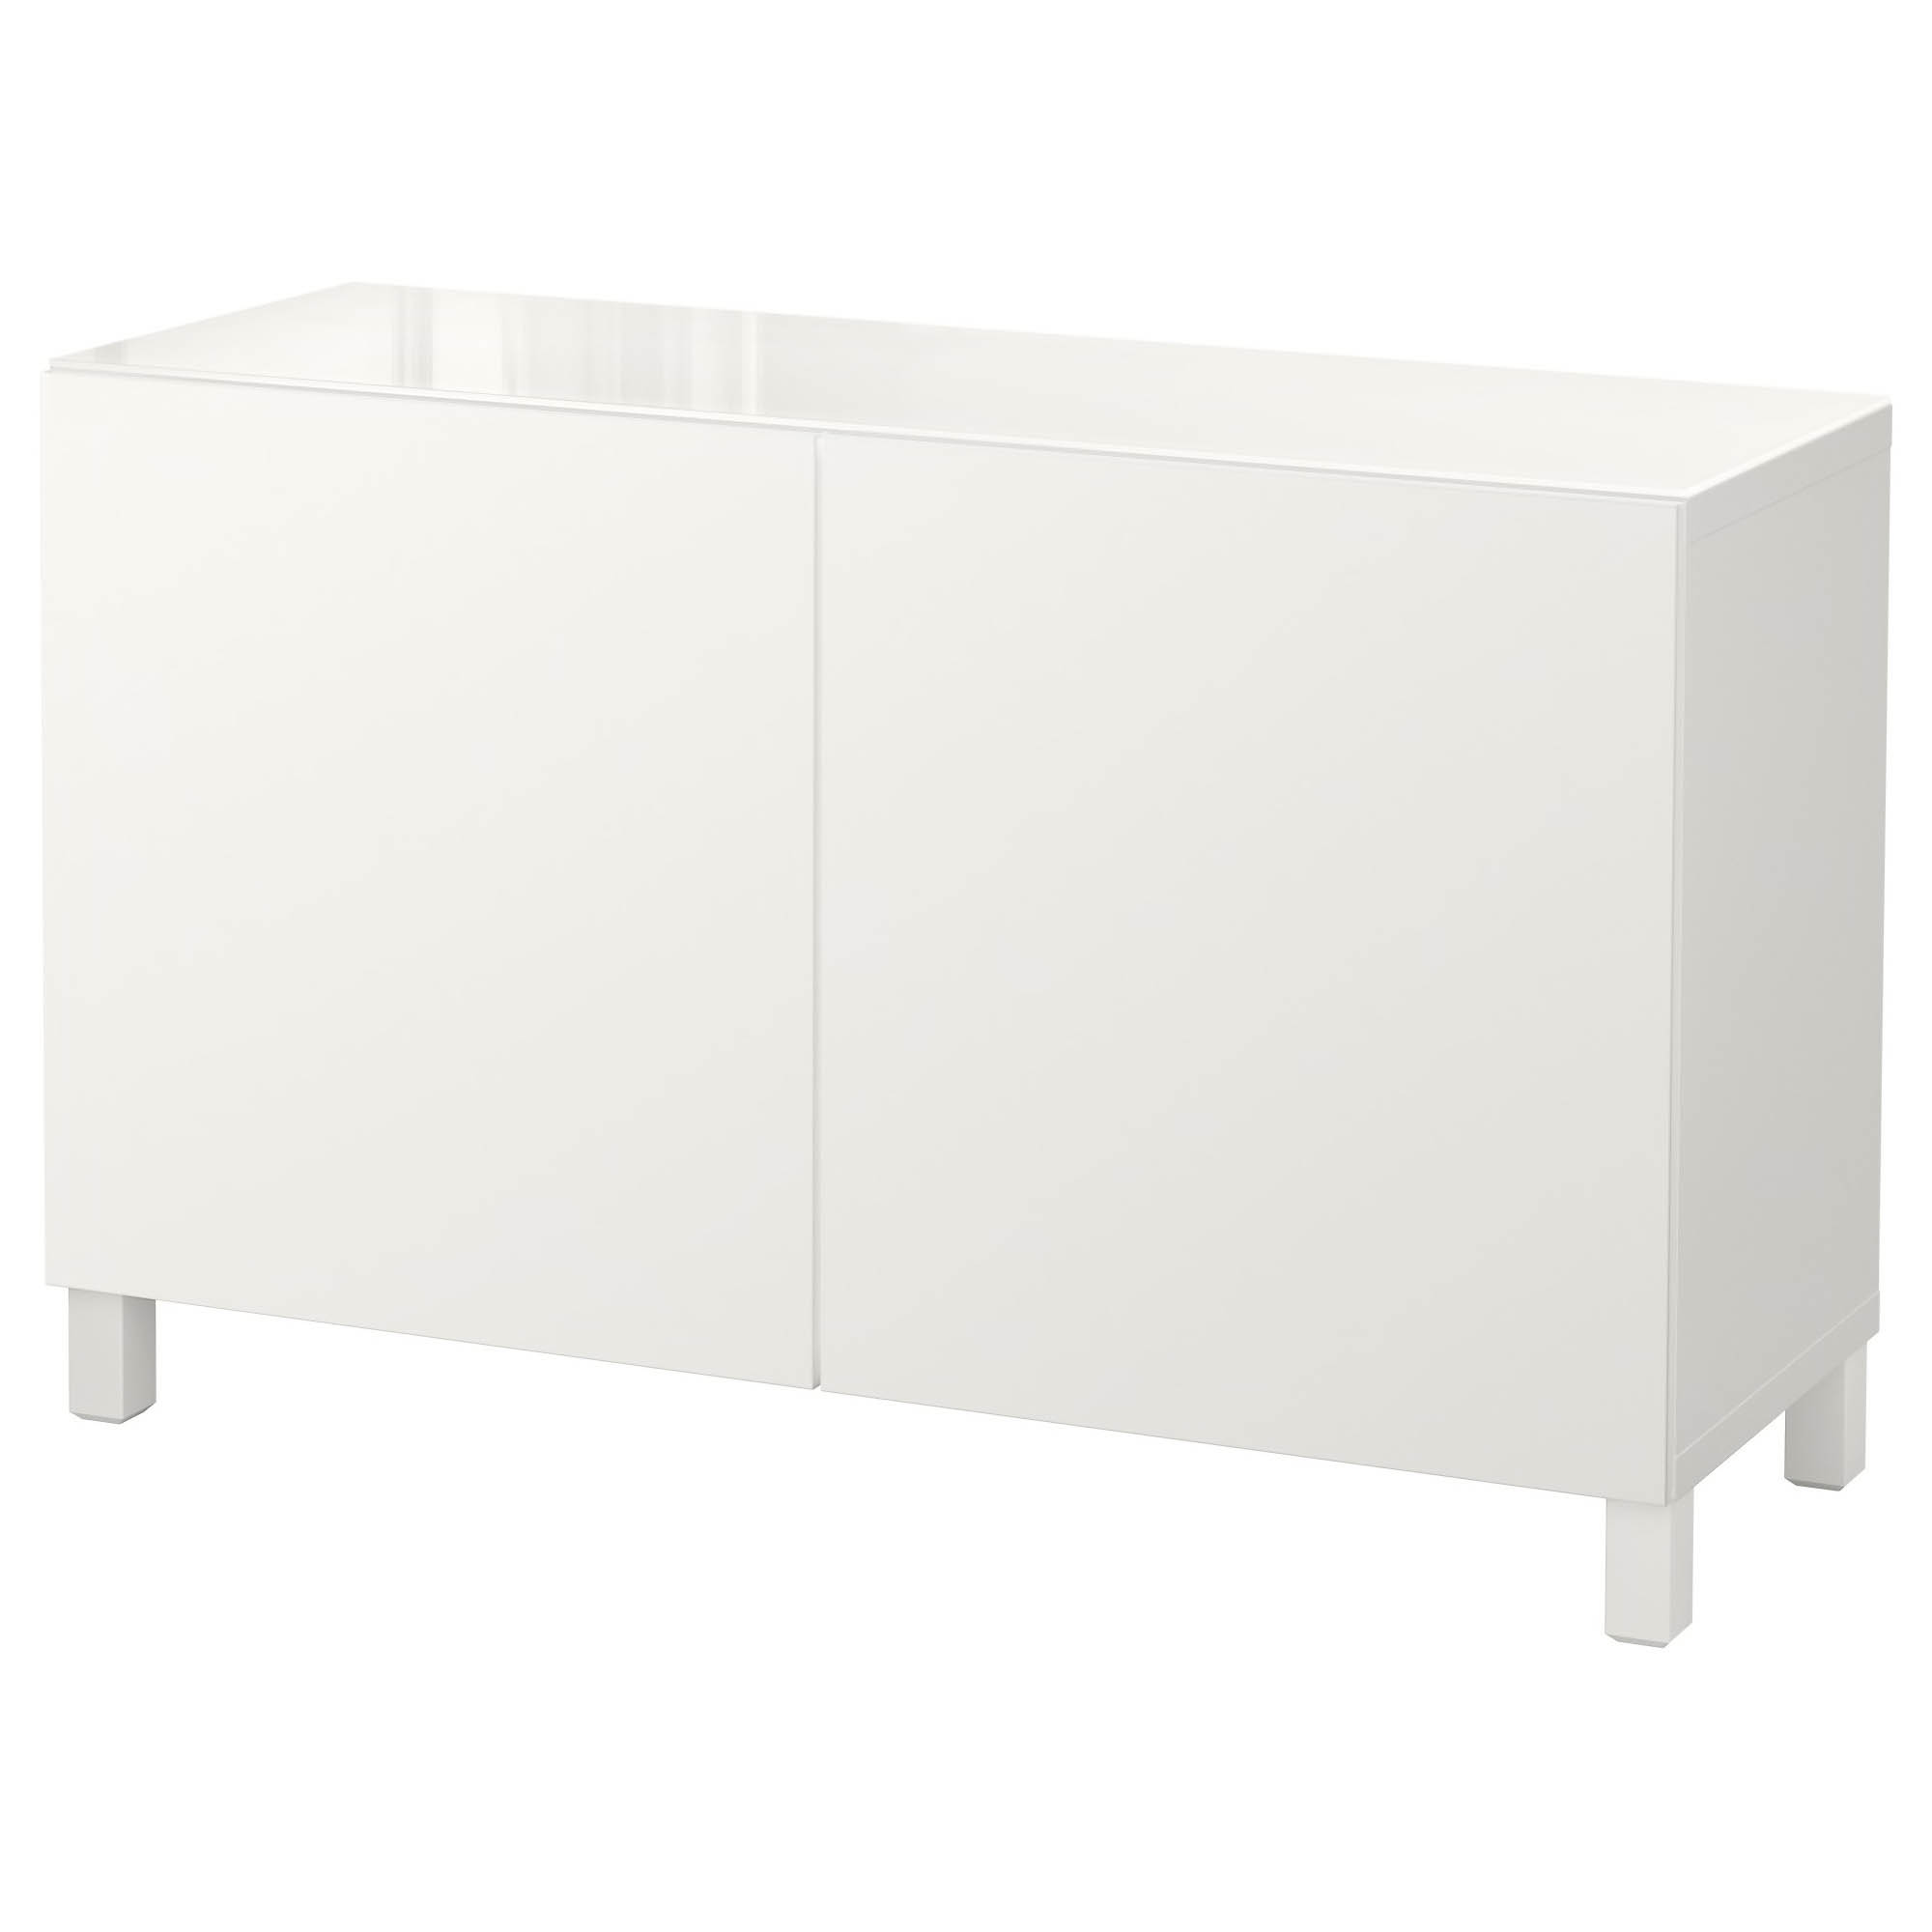 Isa - Furniture Options